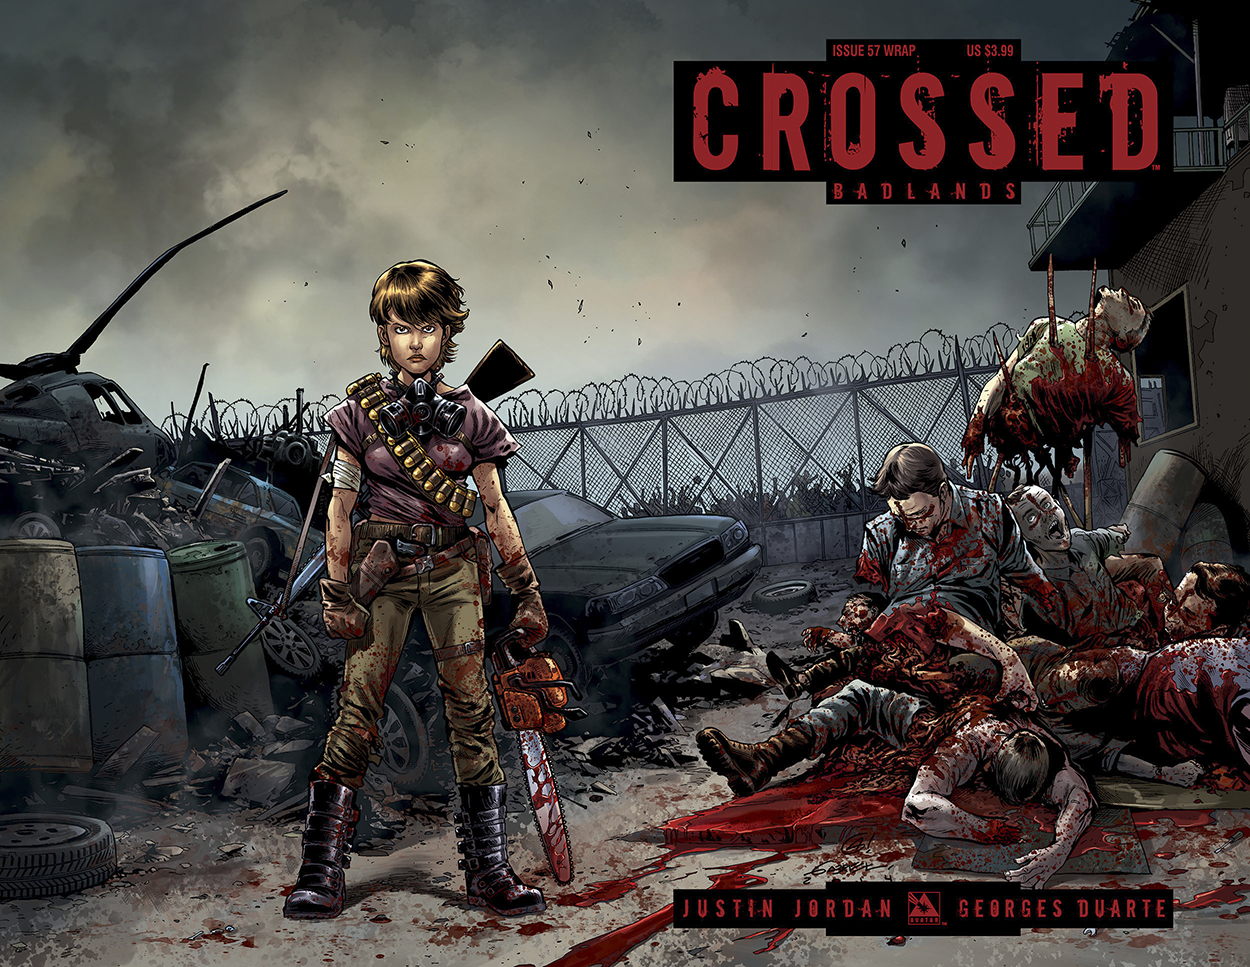 CROSSED BADLANDS #57 WRAP CVR